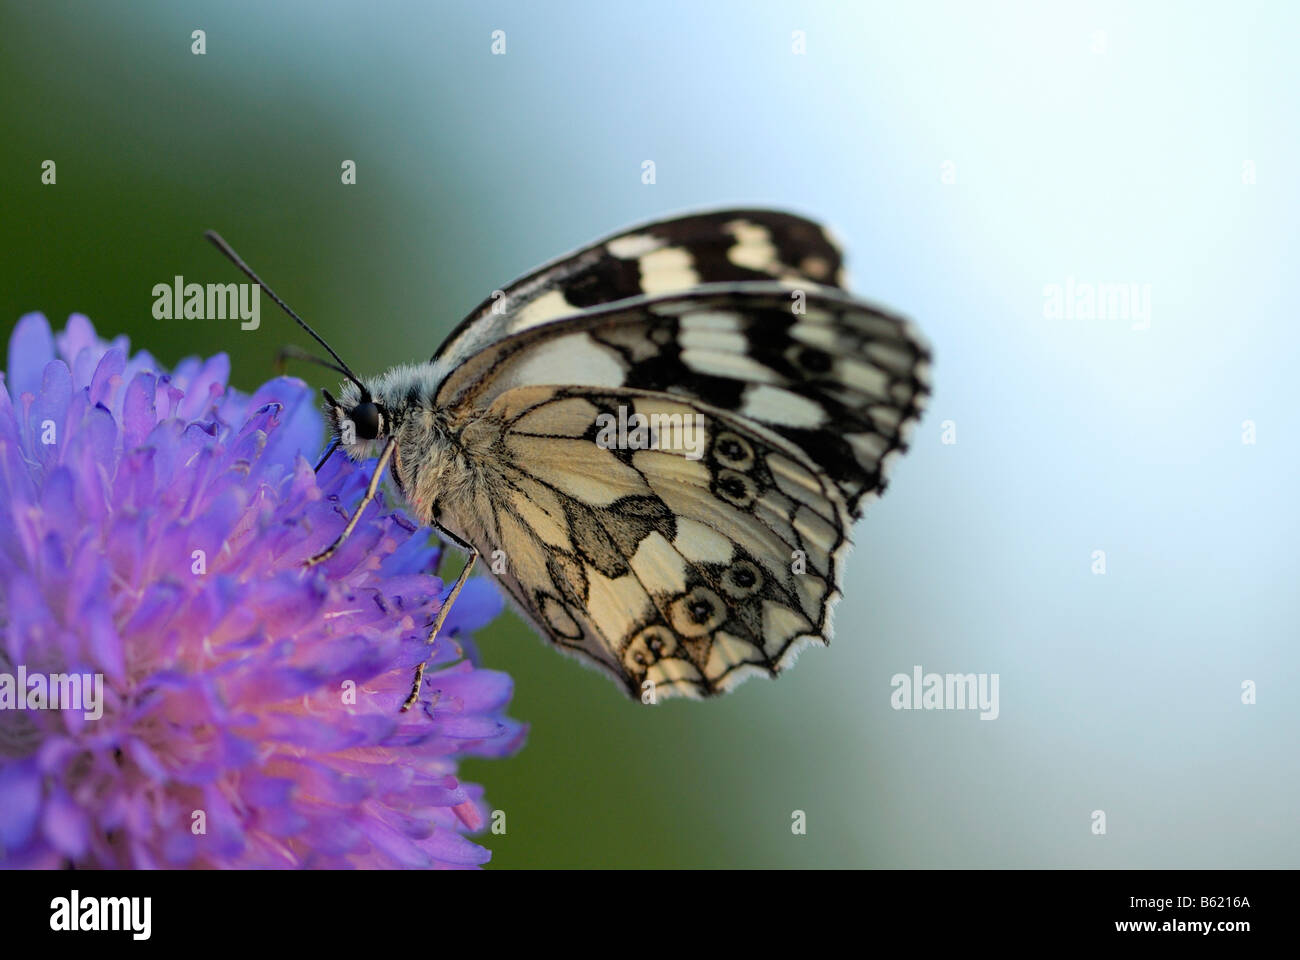 Marbled White Butterfly (Melanargia galathea) resting on a flower - Stock Image